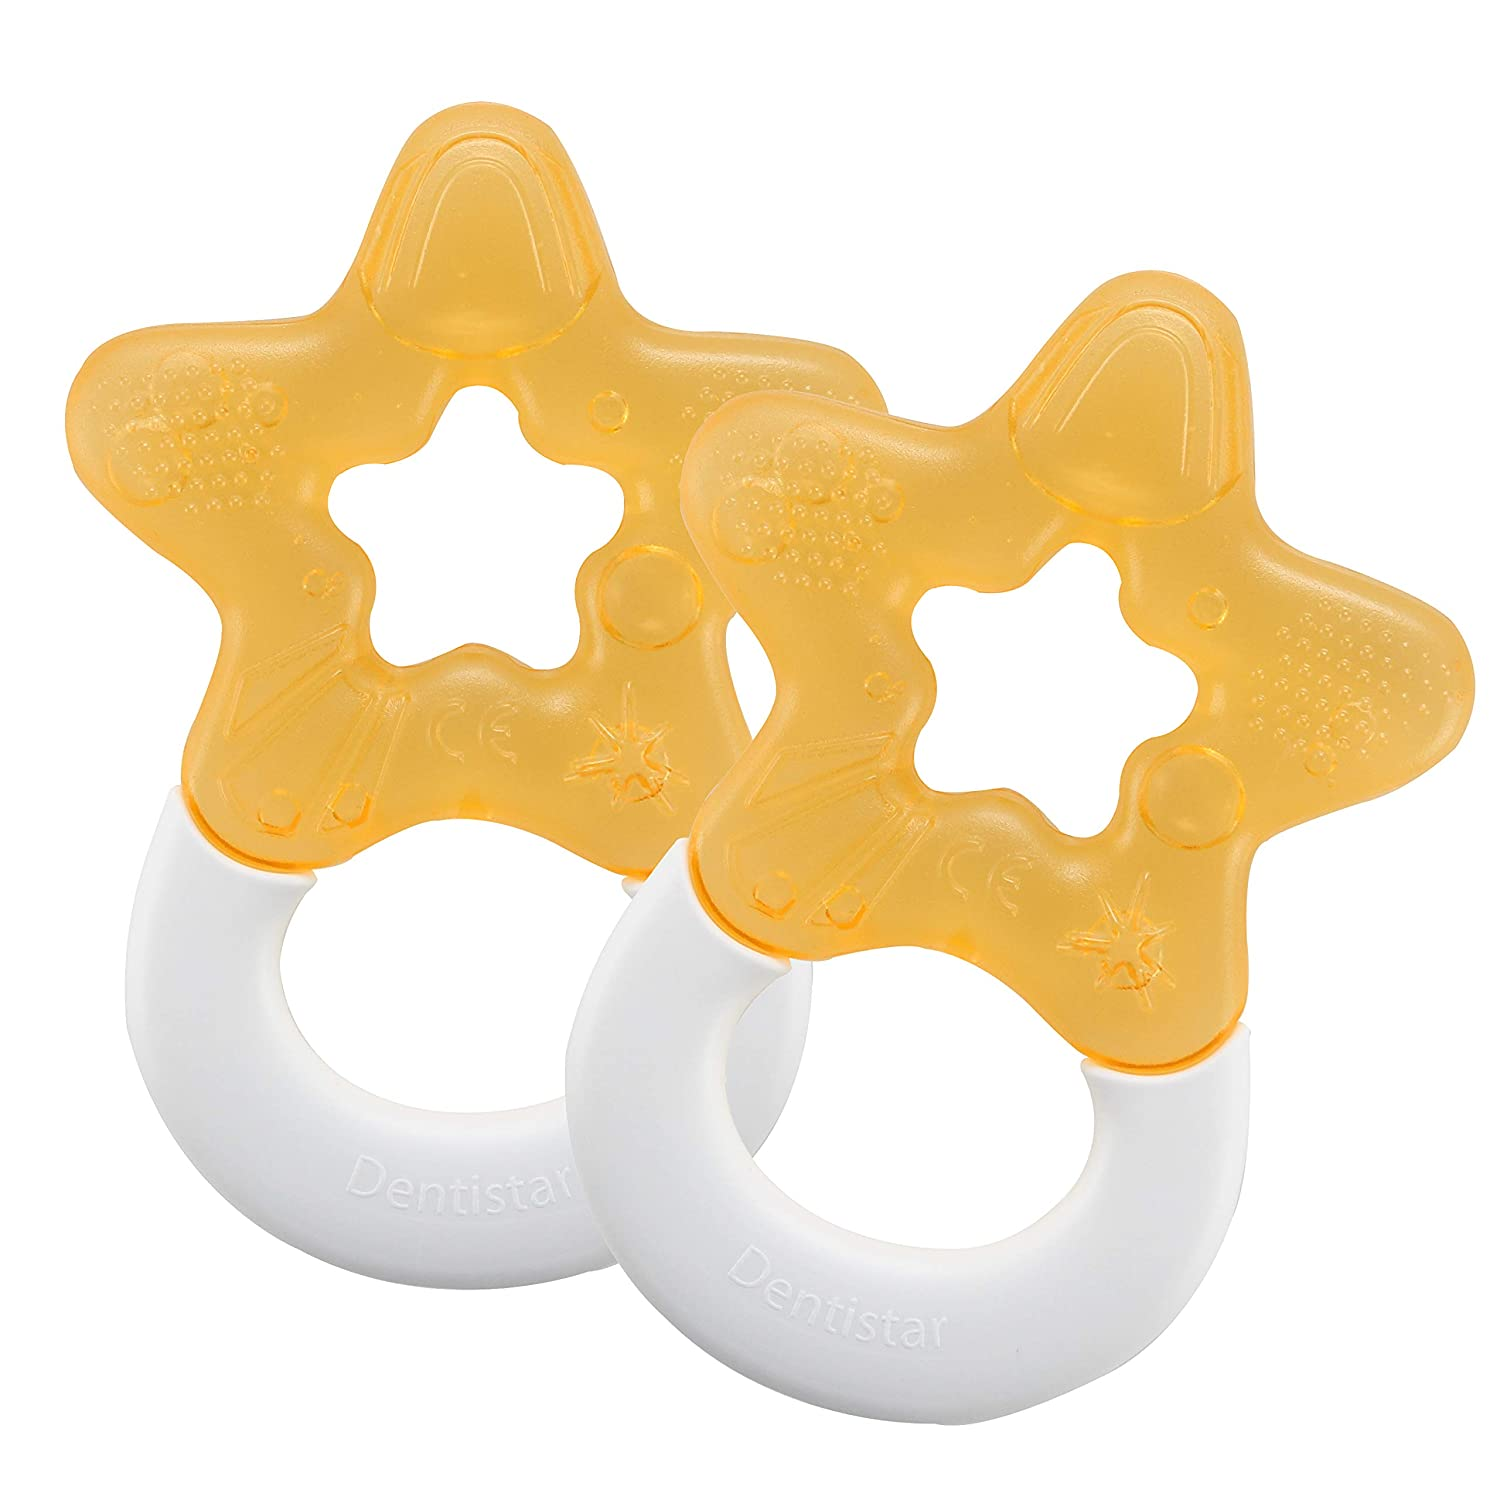 Teething aid for Babies from 3 Months Pink Cooling Biting Star Filled with Water DENTISTAR/® Cooling Teether in a Set of 2 Made in Germany